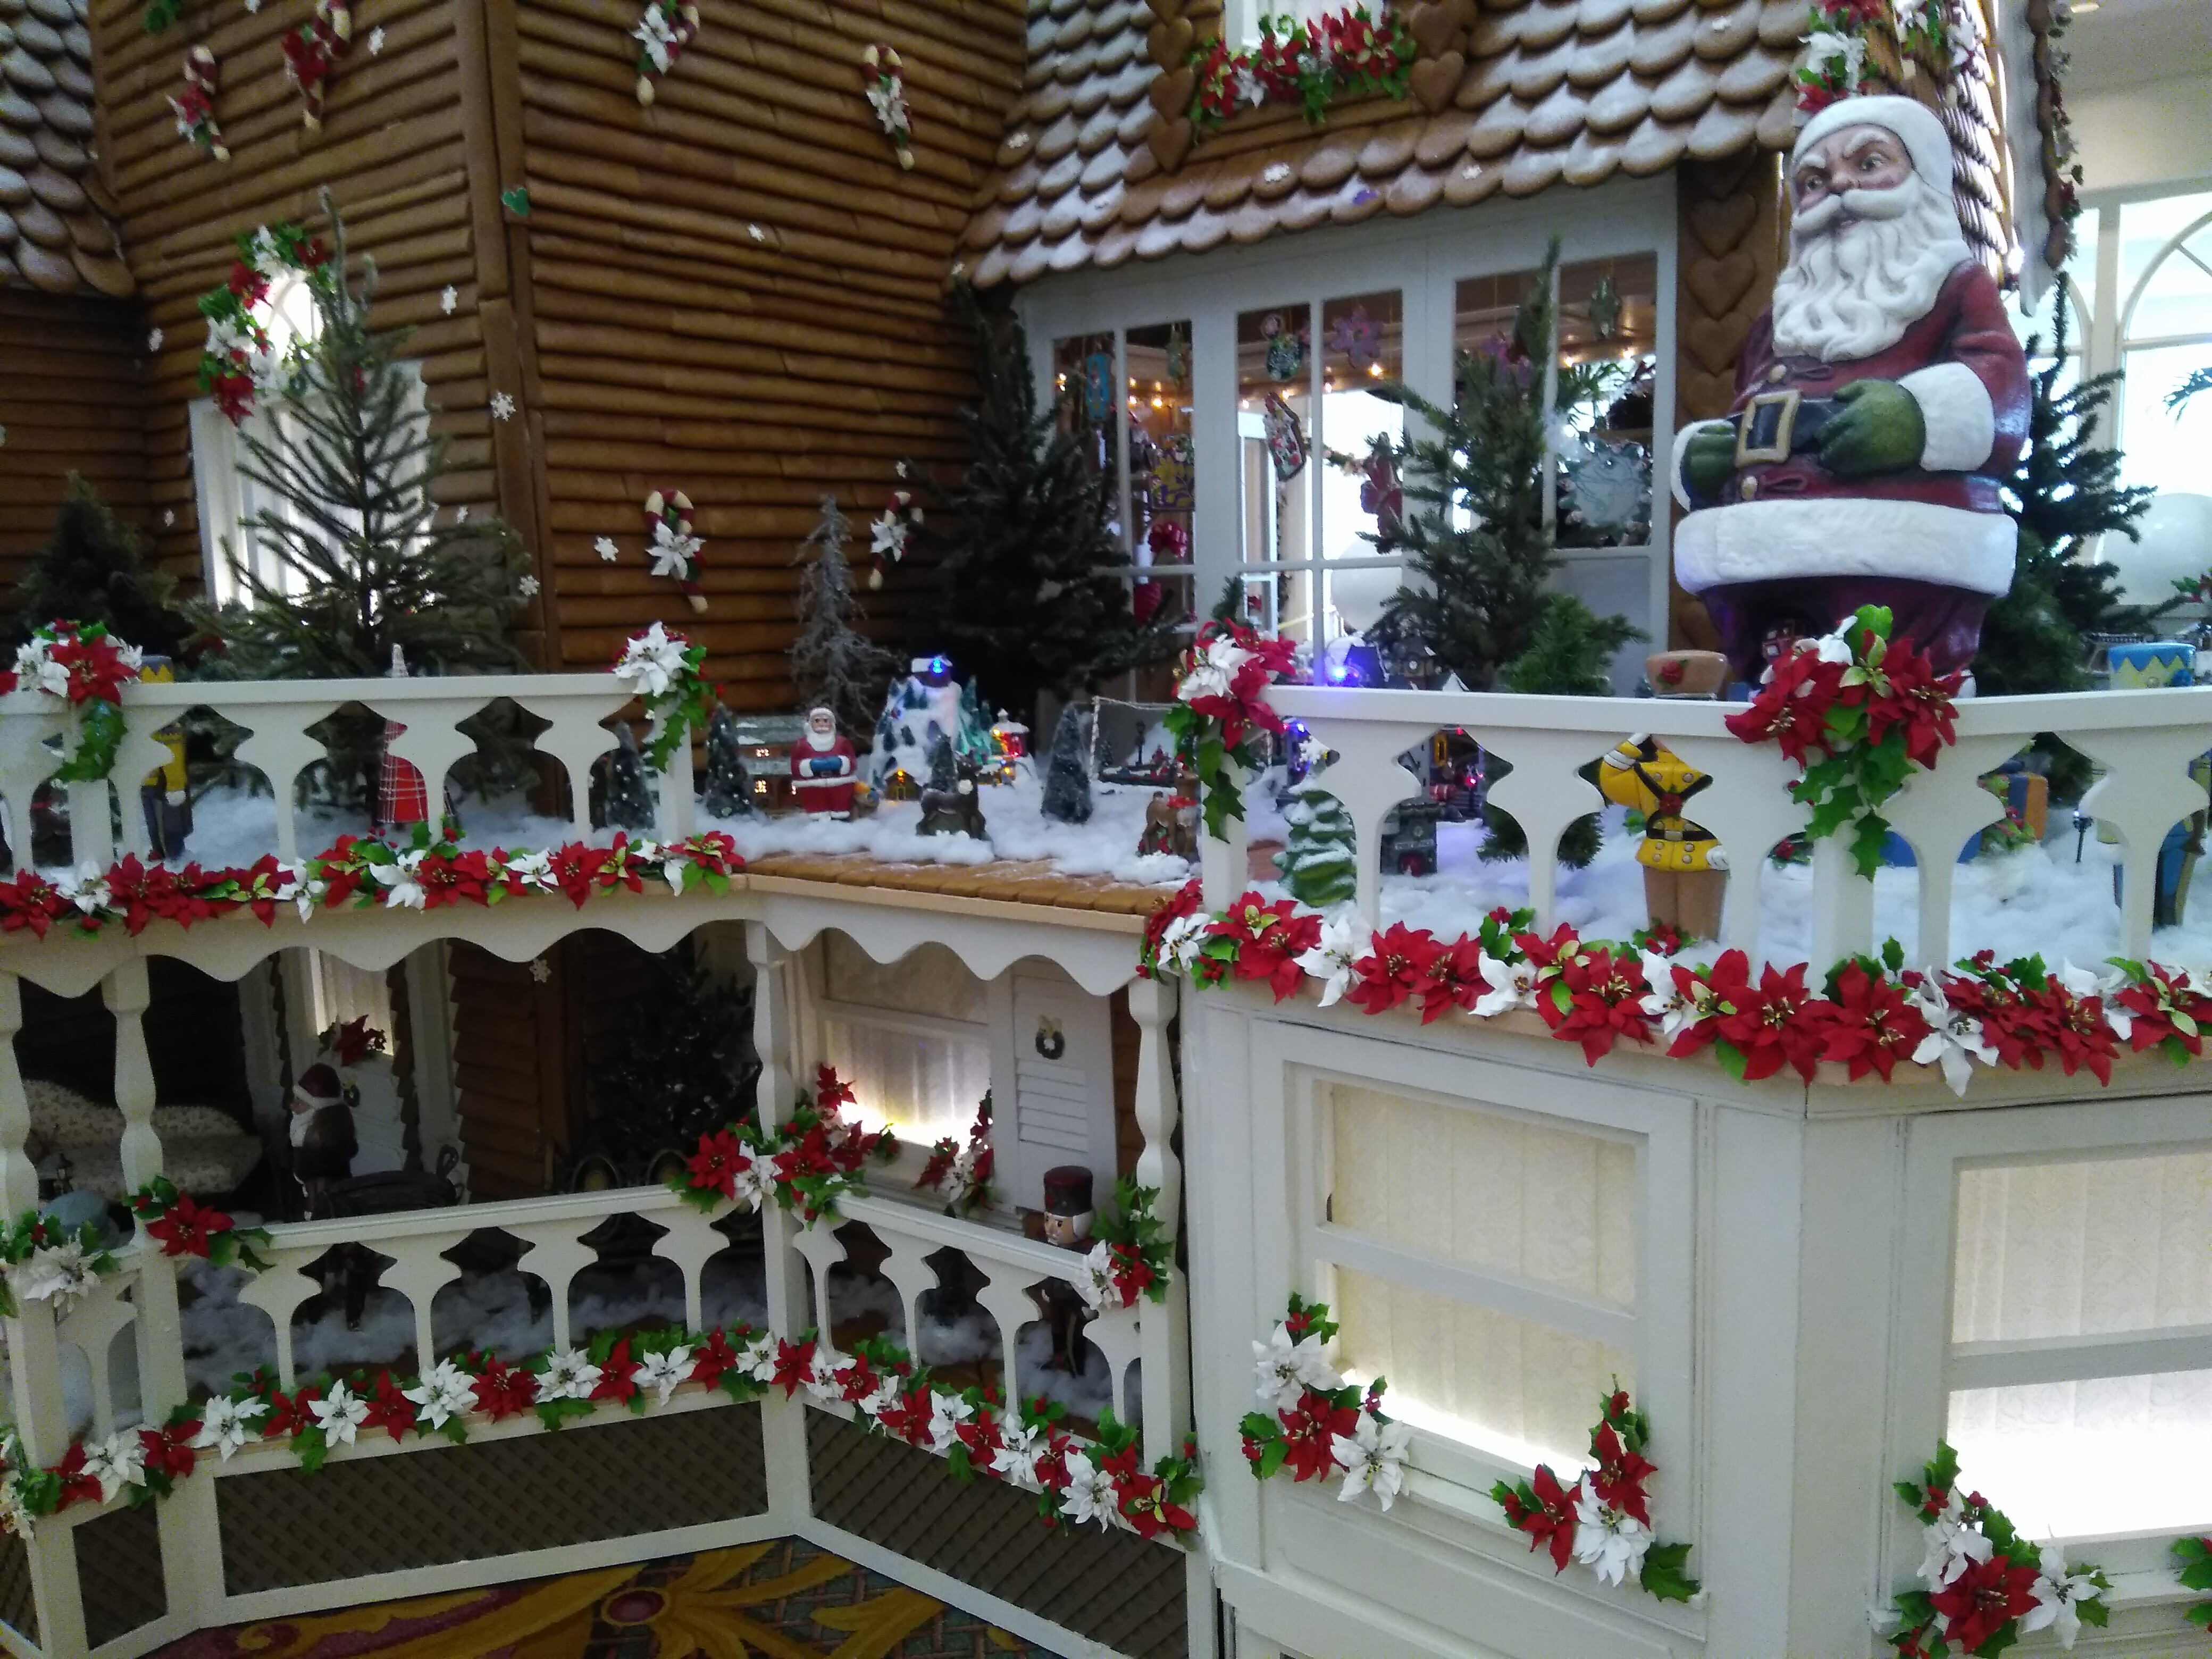 Grand Floridian S Gingerbread House Open For 2018 Season